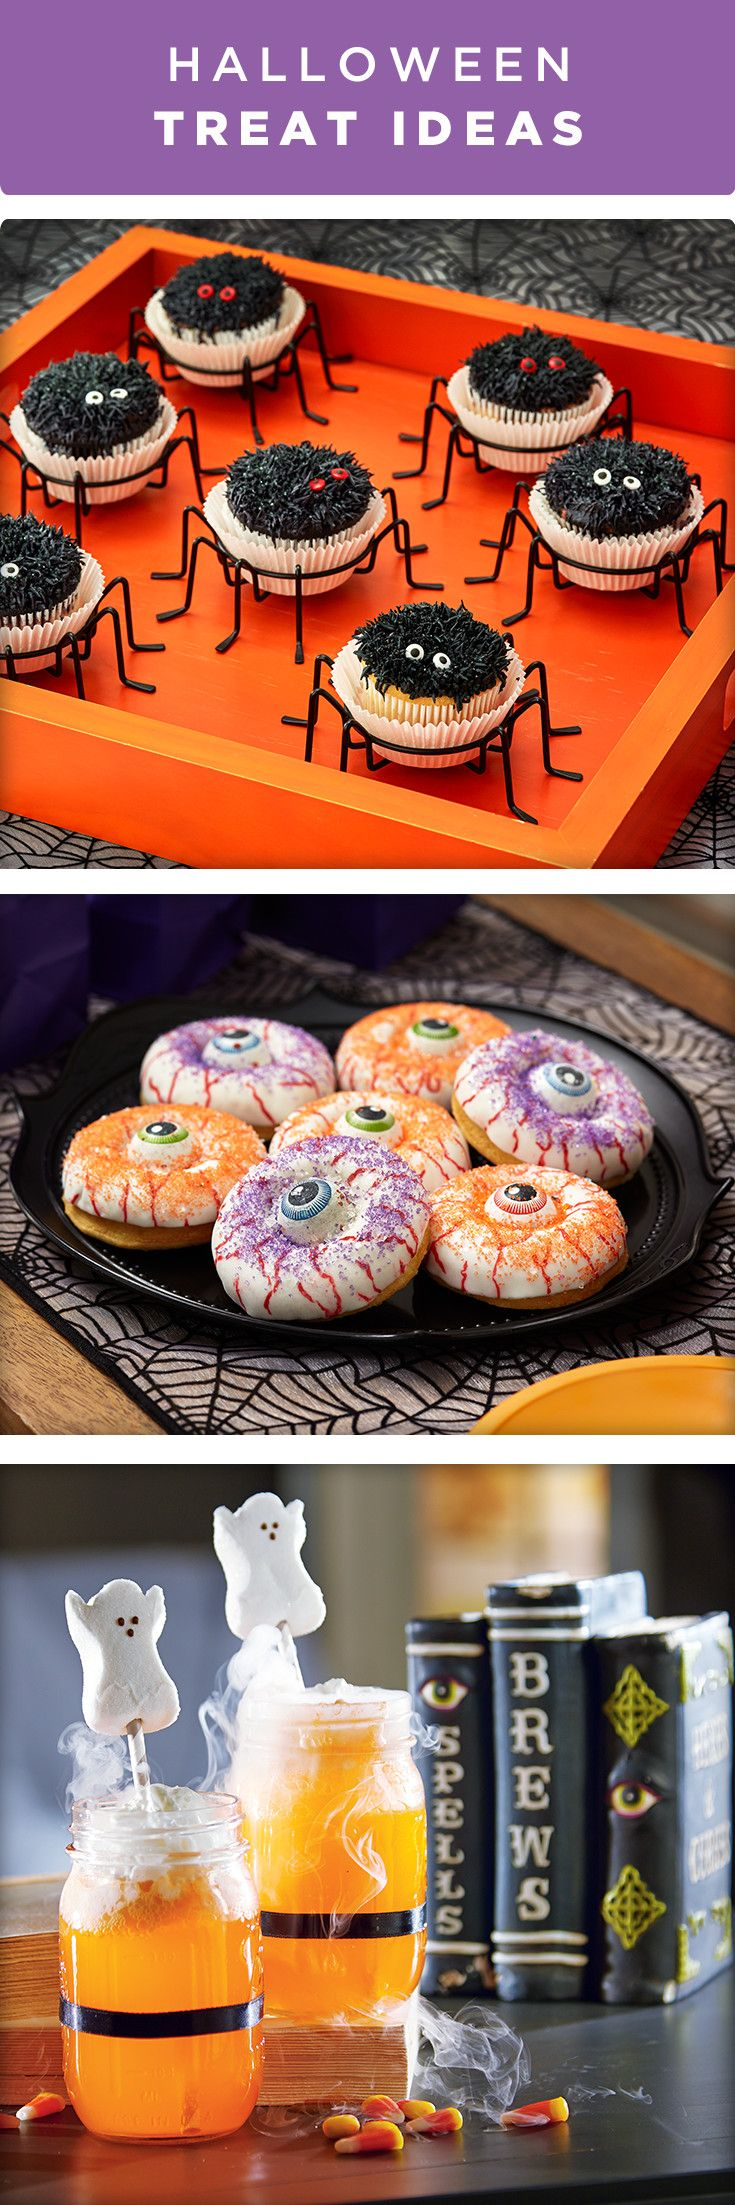 These creepy crawlers and spooky sweets make perfect Halloween treats! Share them with friends and family or serve them at your Halloween party.